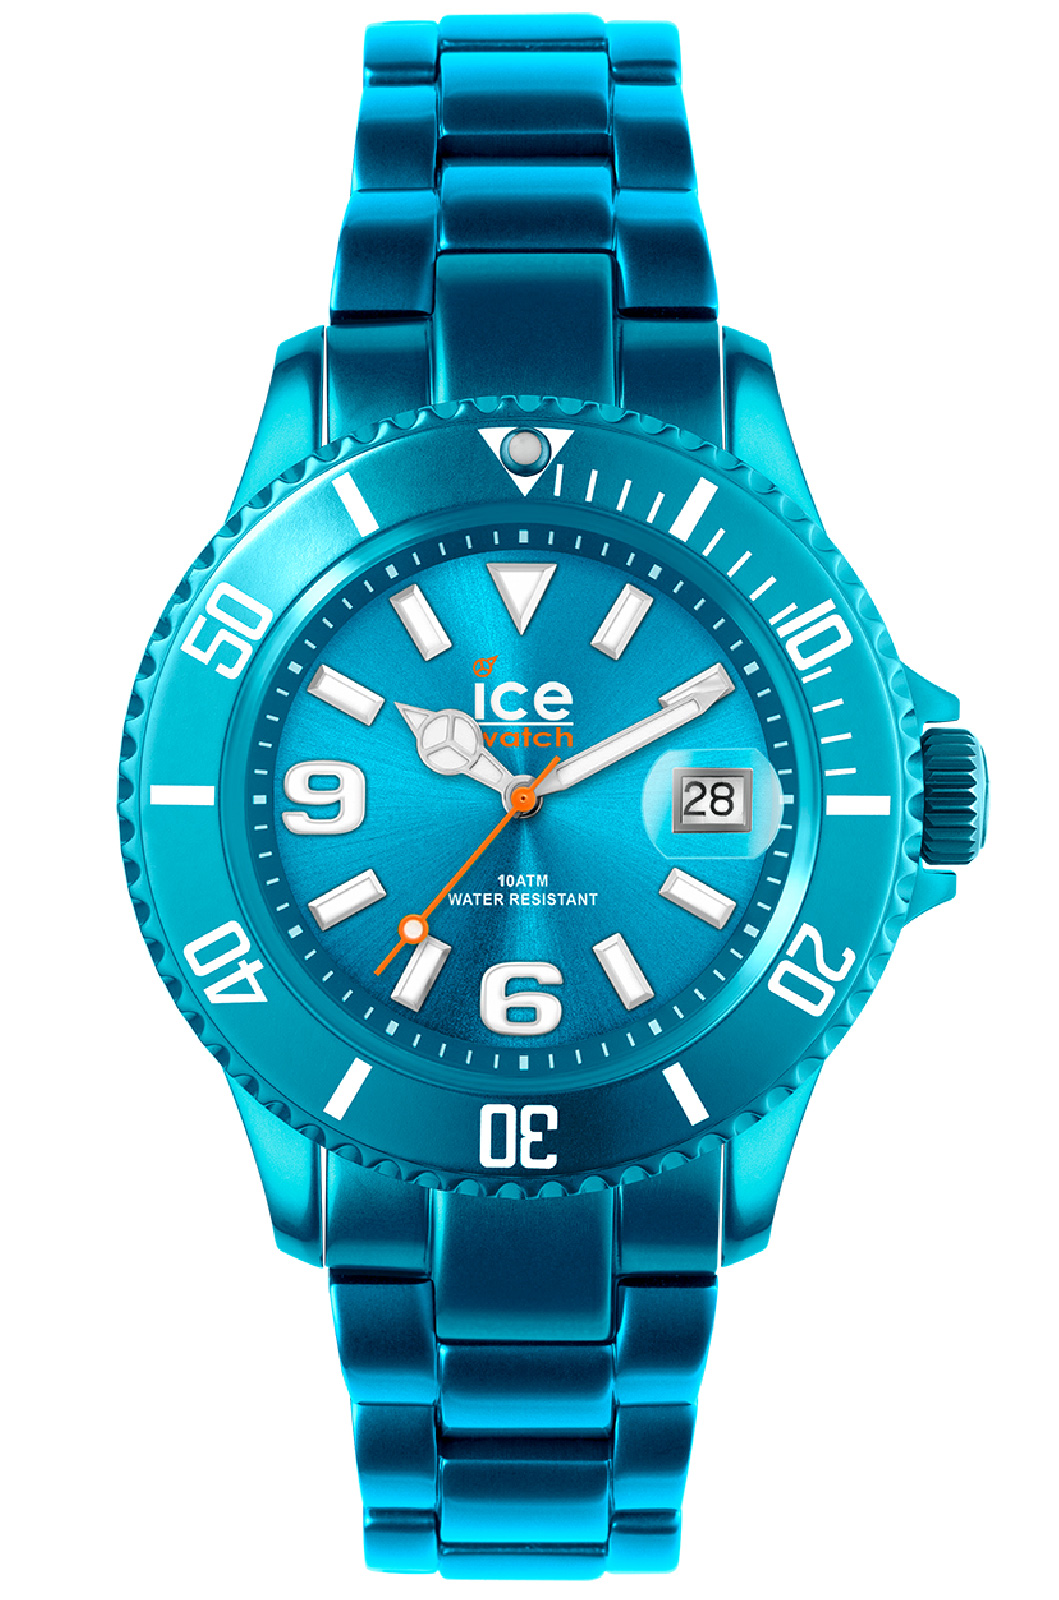 ICE WATCH OROLOGIO ALU TIME UNISEX IN ALLUMINIO TURCHESE CON DATA AL.TE.U.A.12